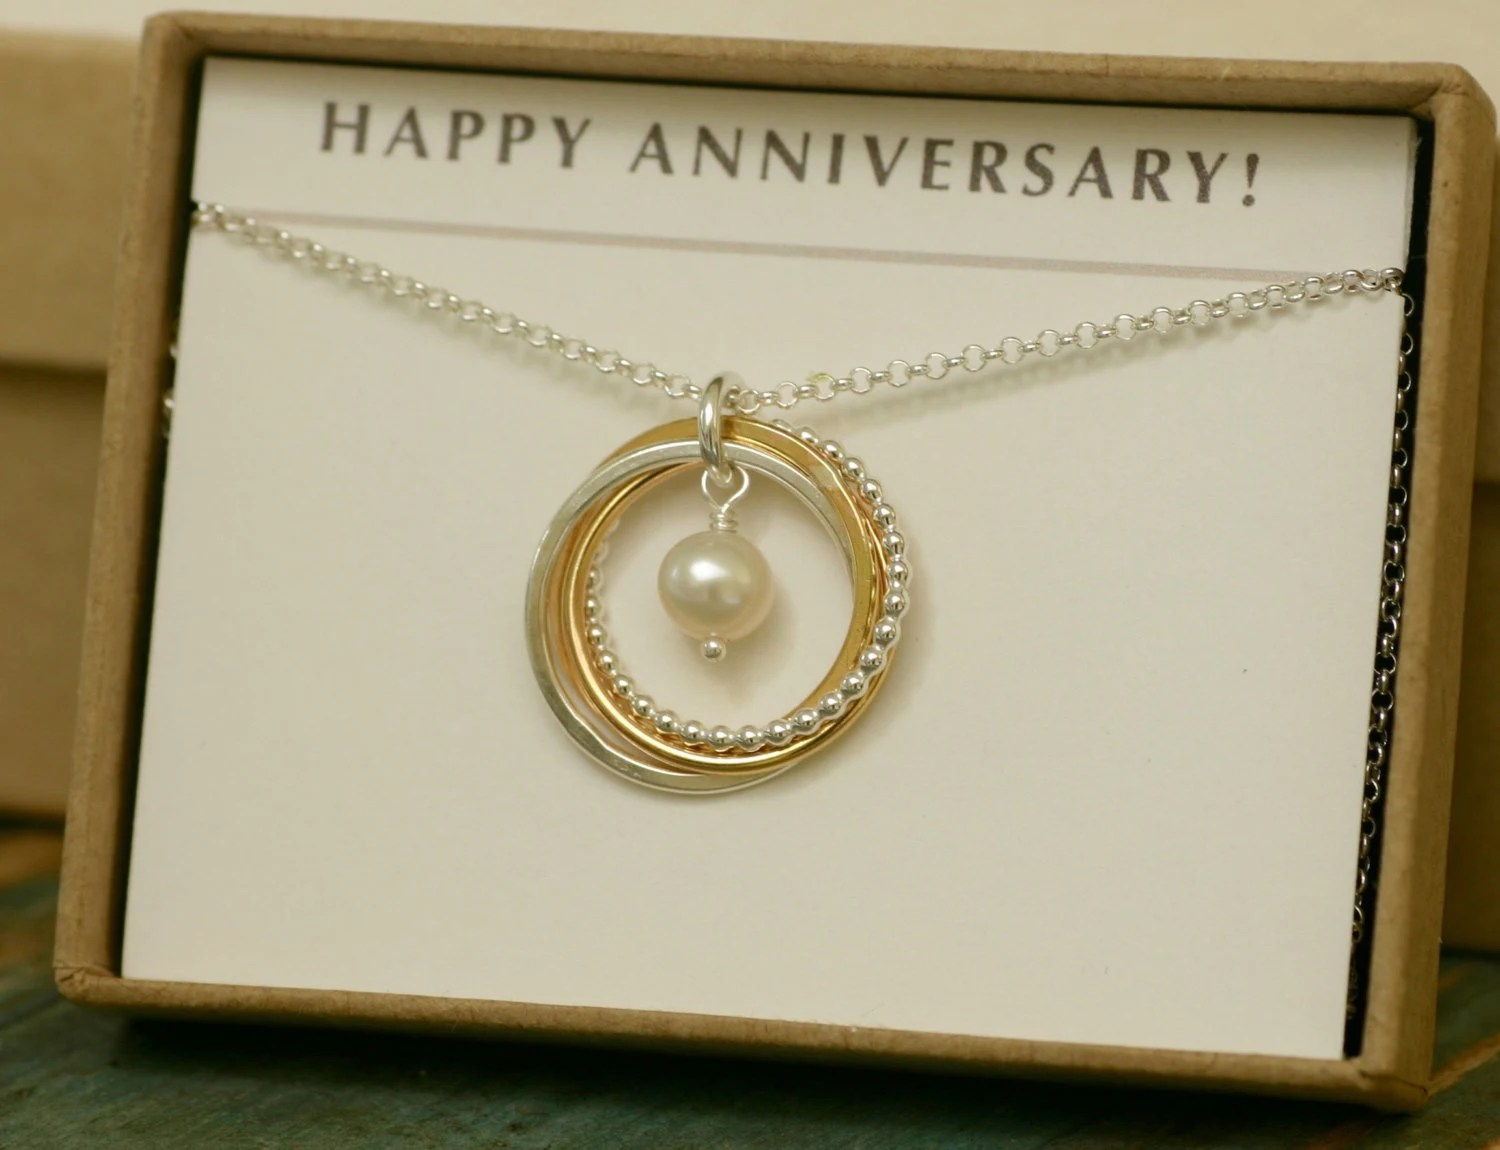 4th Anniversary Gift For Wife Birthday Gift From Bride 4